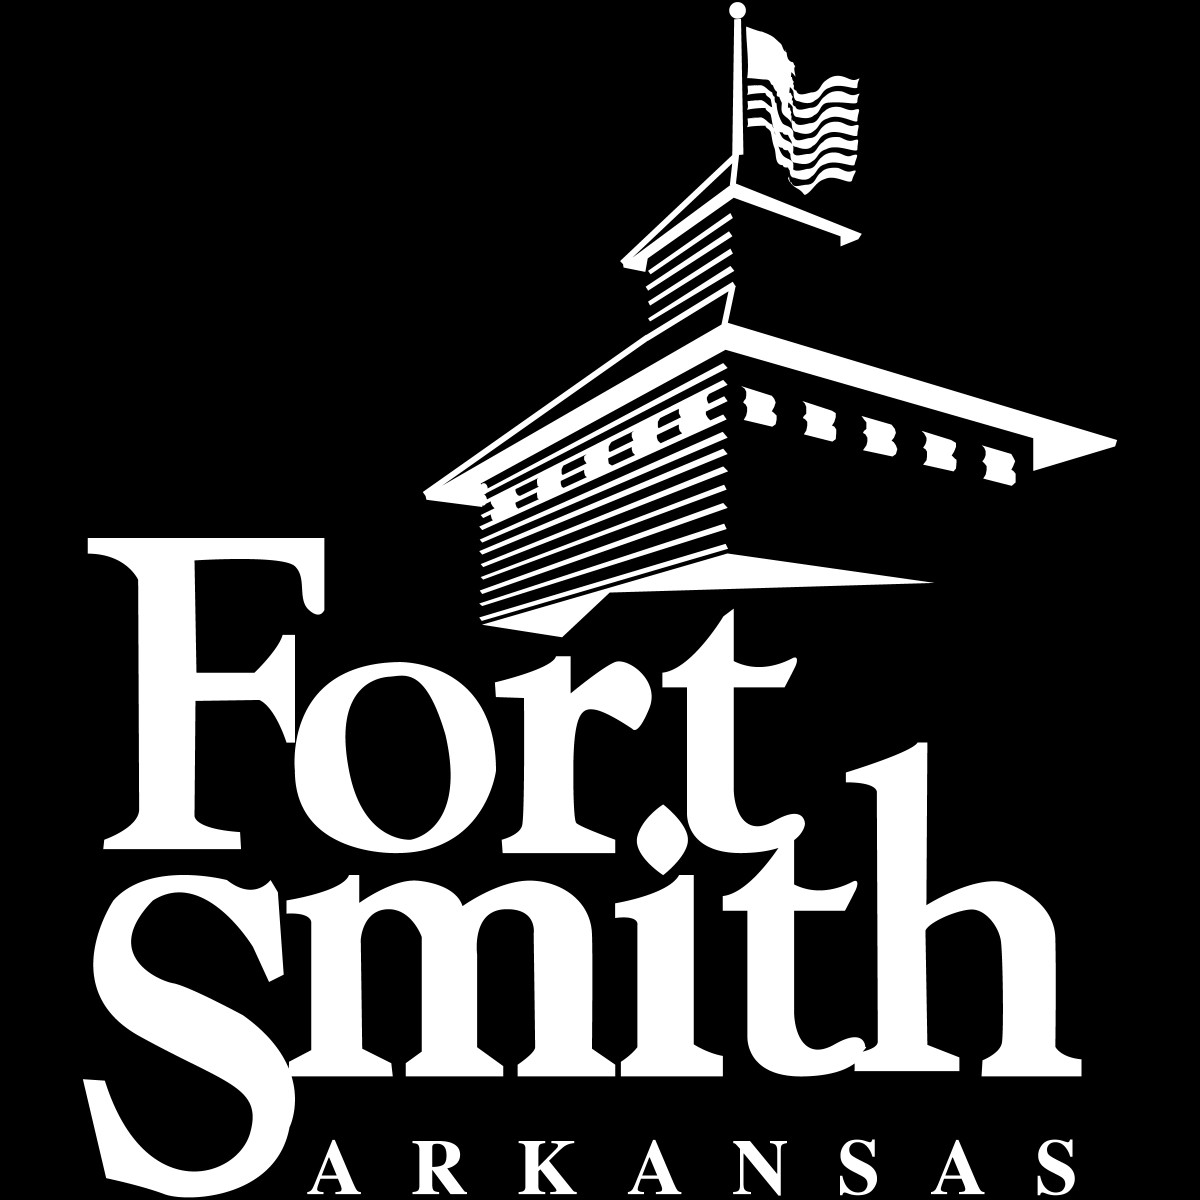 Fort Smith, Arkansas - Resource Guide for Those in Need